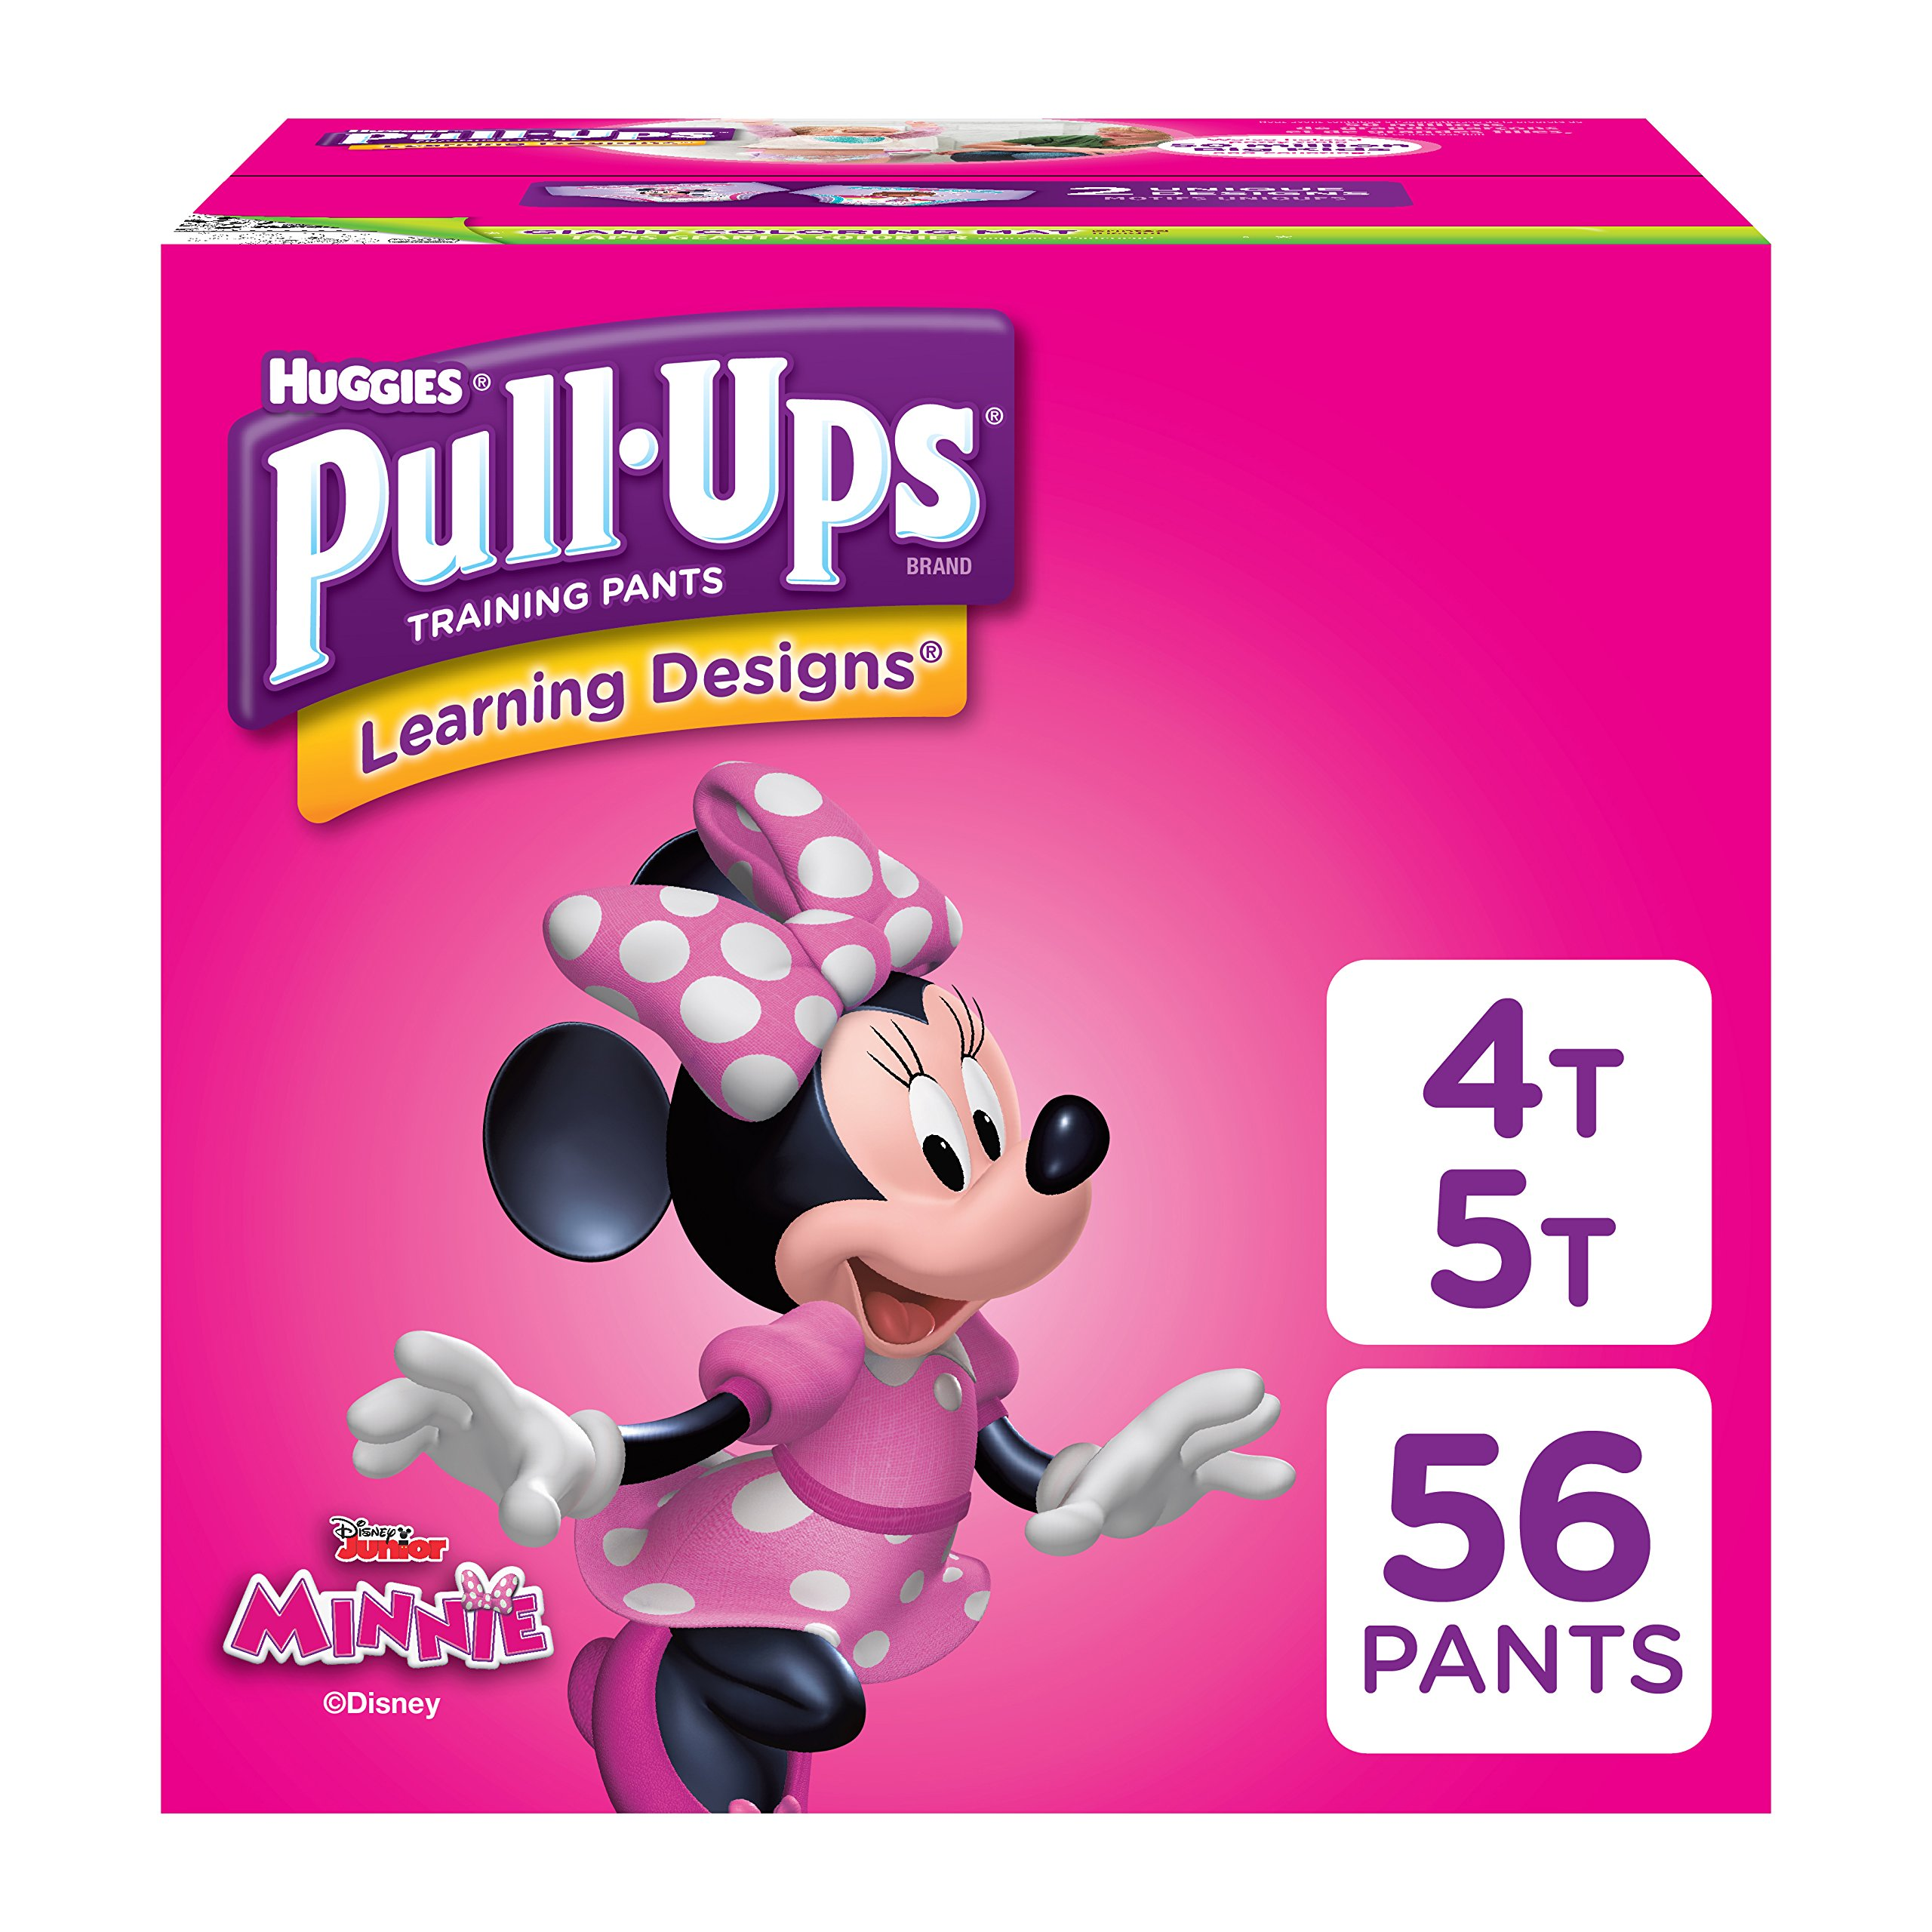 Pull-Ups Learning Designs for Girls Potty Training Pants, 4T-5T (38-50 lbs.), 56 Ct. (Packaging May Vary) by Pull-Ups